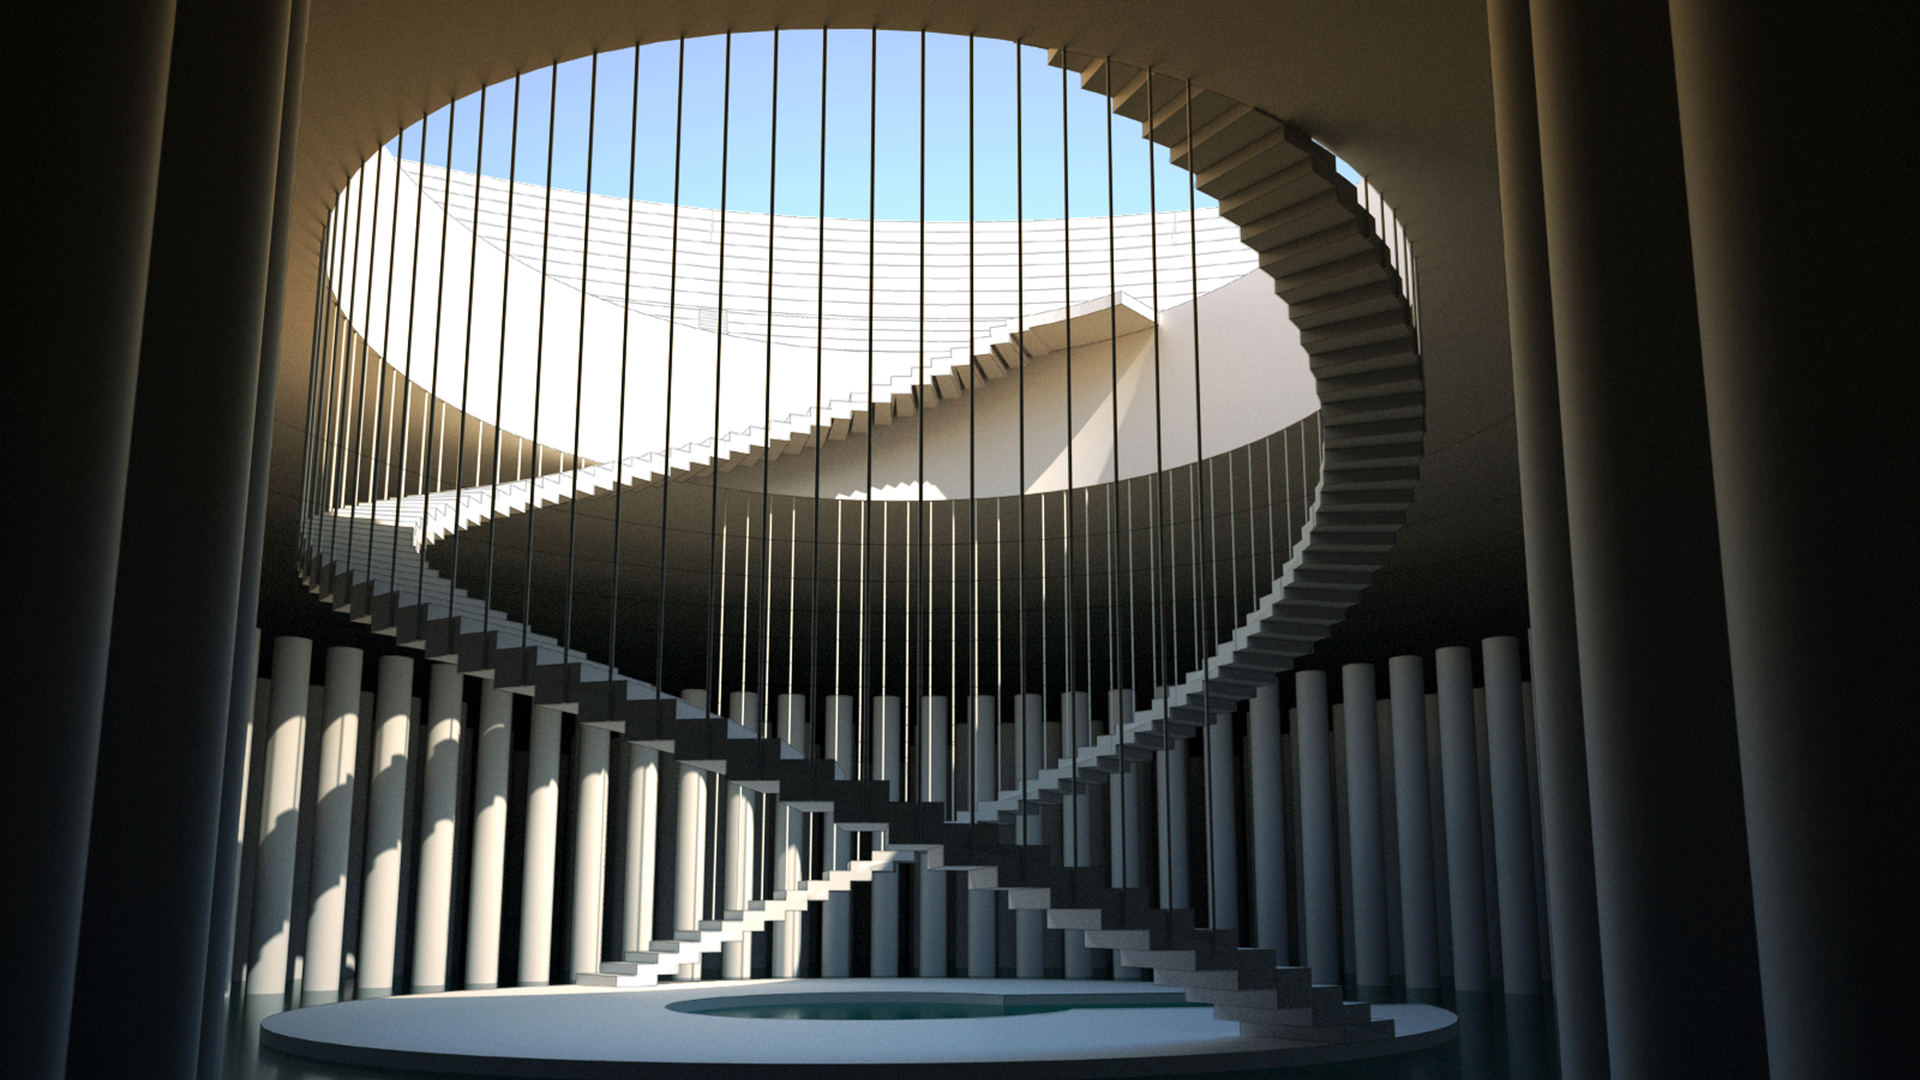 Major new exhibition at AMoA puts focus on the art of architecture